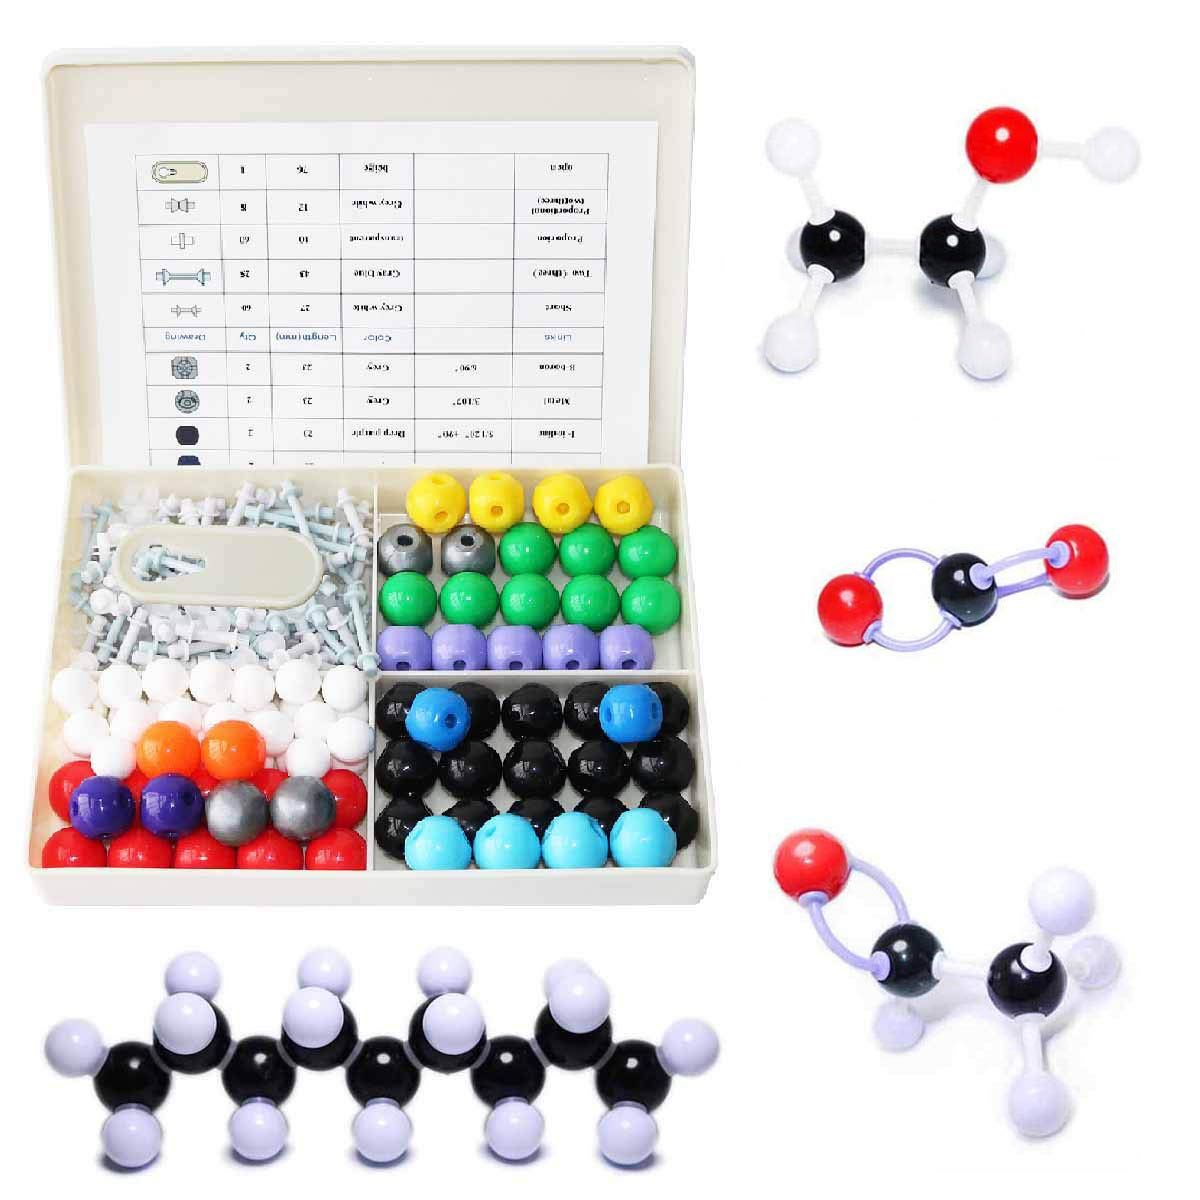 LINKTOR Chemistry Molecular Model Kit, Student or Teacher Set for Organic and Inorganic Chemistry Learning, Motivate Enthusiasm for Learning and Raising Space Imagination (240 Pack)